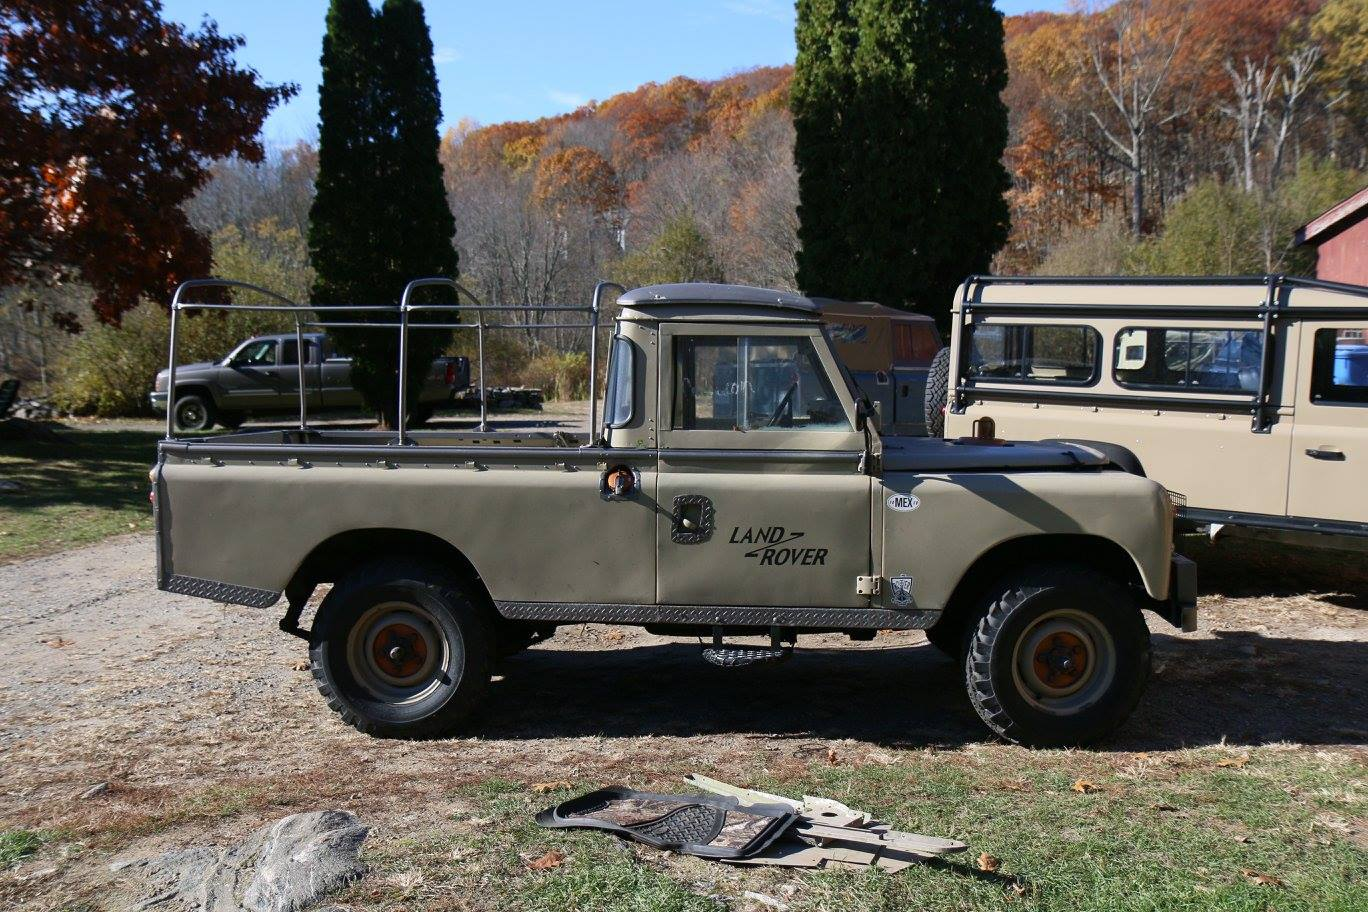 1972 Land Rover Series III 109 inch pickup